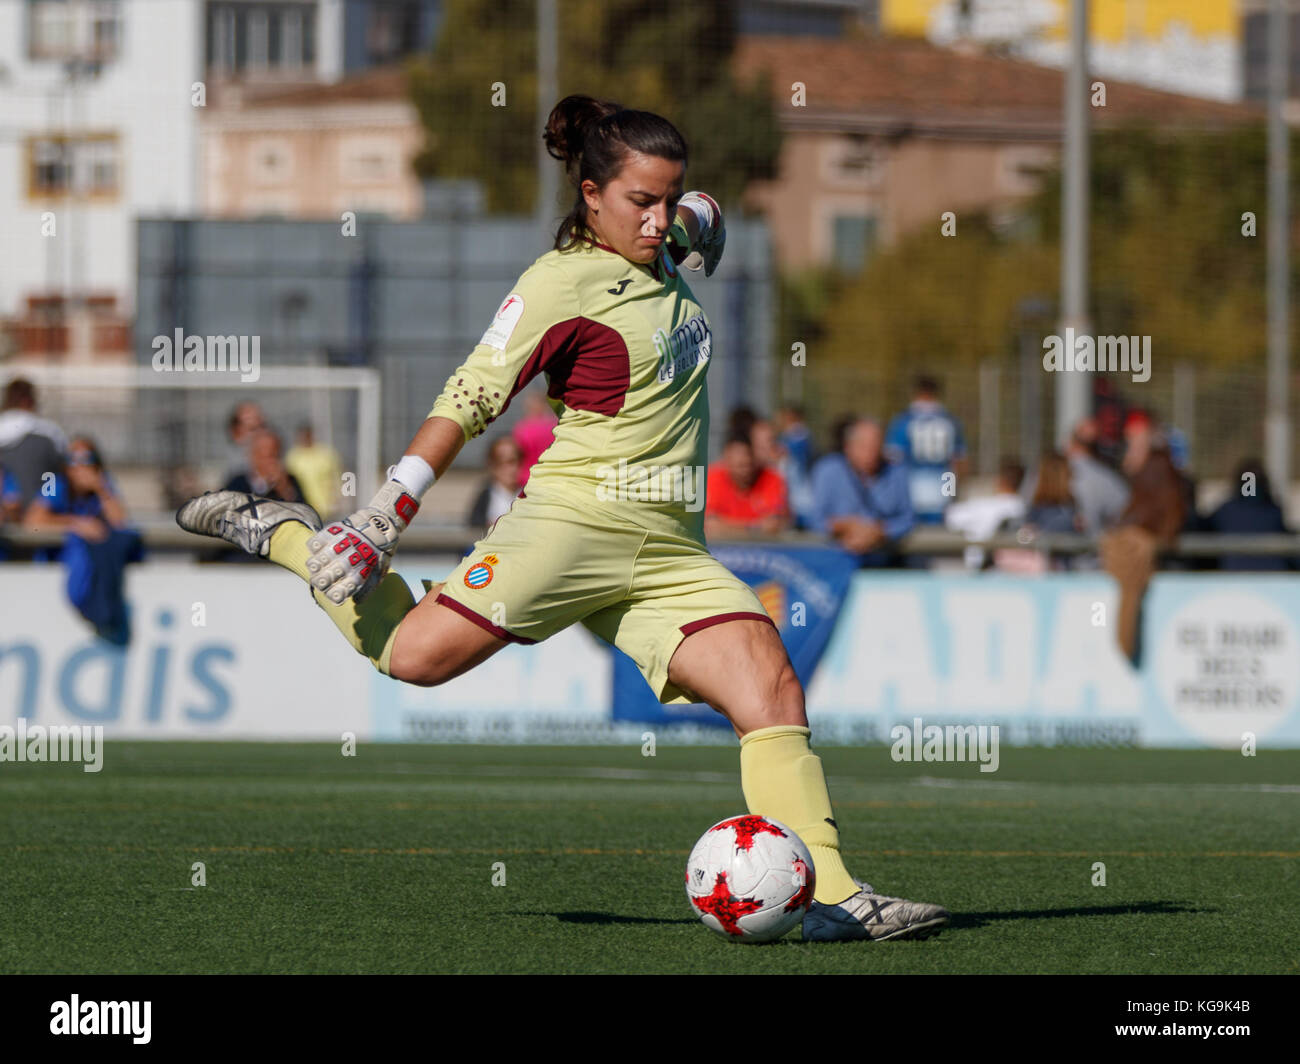 Barcelona, Spain. 5th November, 2017. Match of Spanish Women's Football League between RCD Espanyol and Real - Stock Image